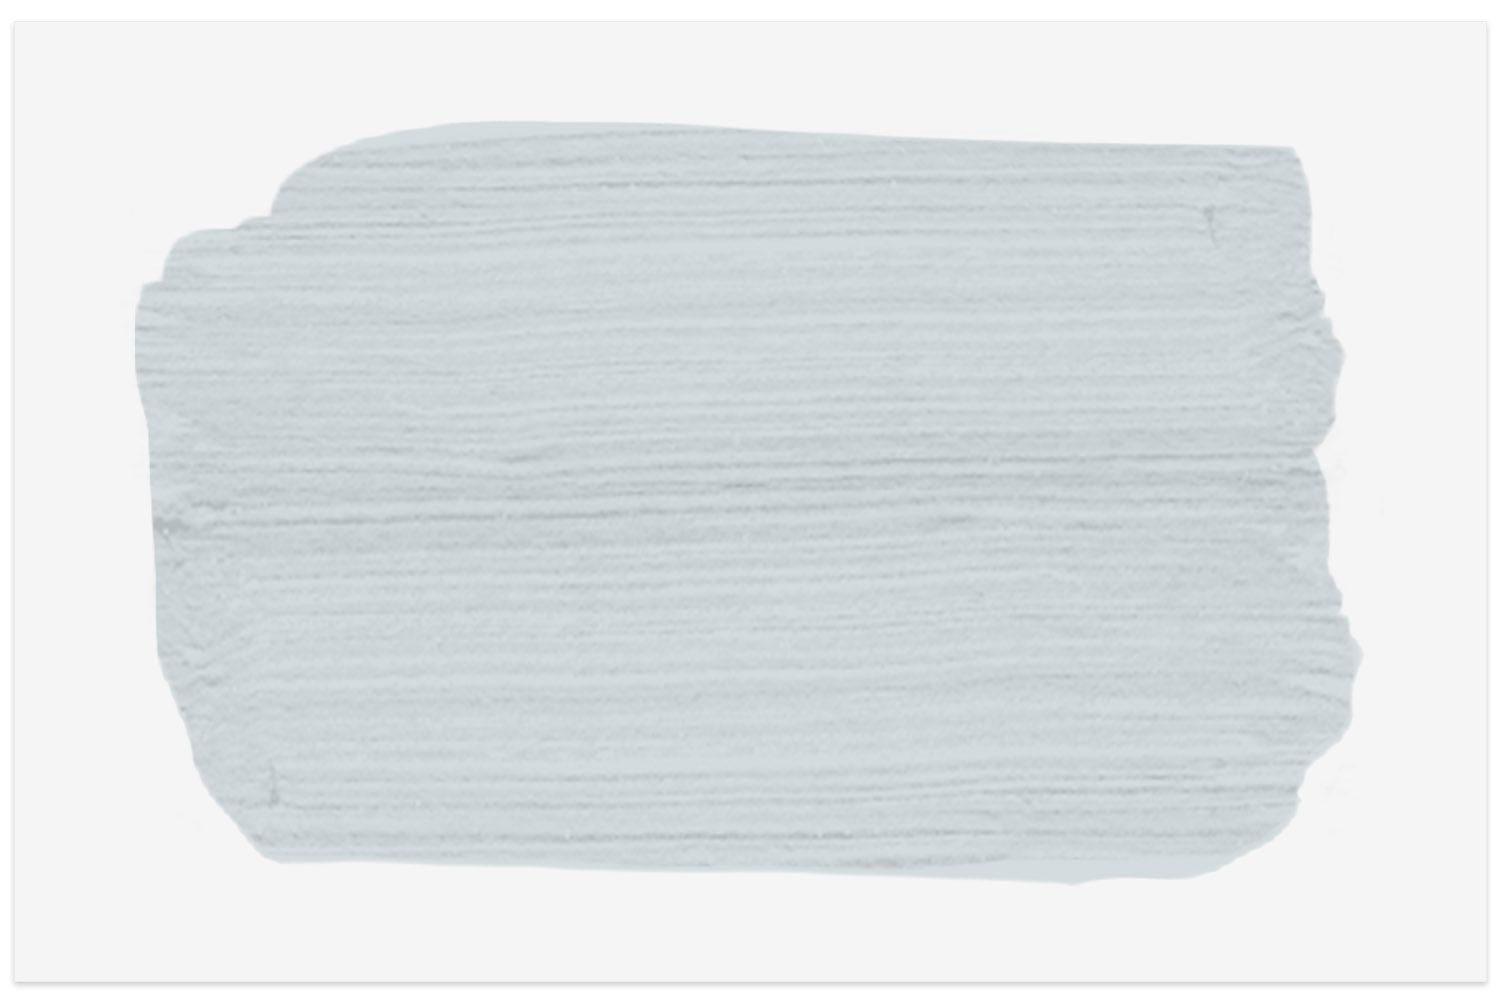 Winter's Breath paint swatch from PPG Paints